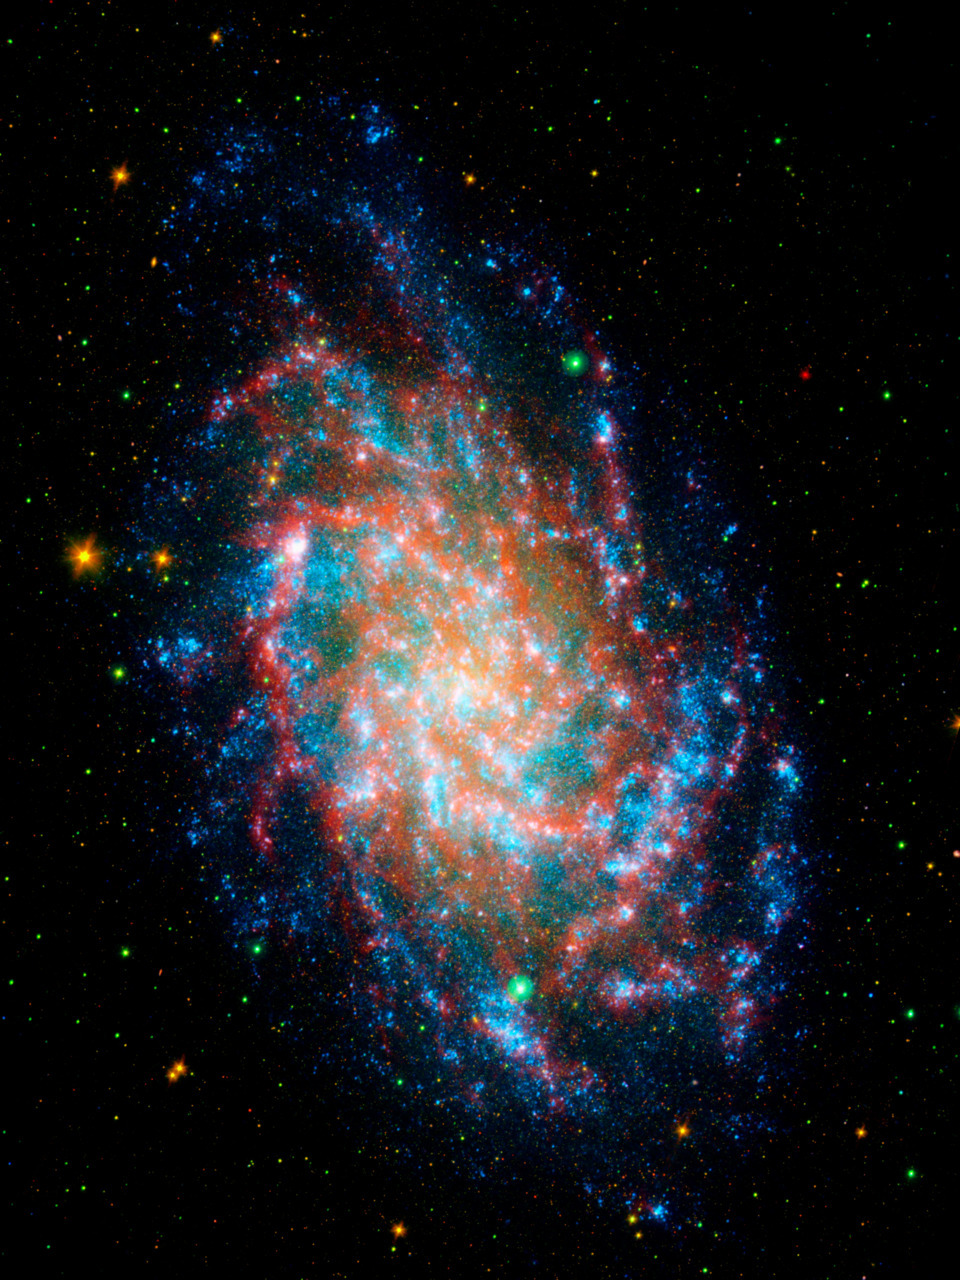 Multispectral Triangulum Galaxy Far-ultraviolet light from young stars glimmers blue, near-ultraviolet light from intermediate age stars glows green, near-infrared light from old stars burns yellow and orange, and dust rich in organic molecules burns red. The small blue flecks outside the spiral disk of M33 are most likely distant background galaxies. This image is a four-band composite that, in addition to the two ultraviolet bands, includes near infrared as yellow/orange and far infrared as red.